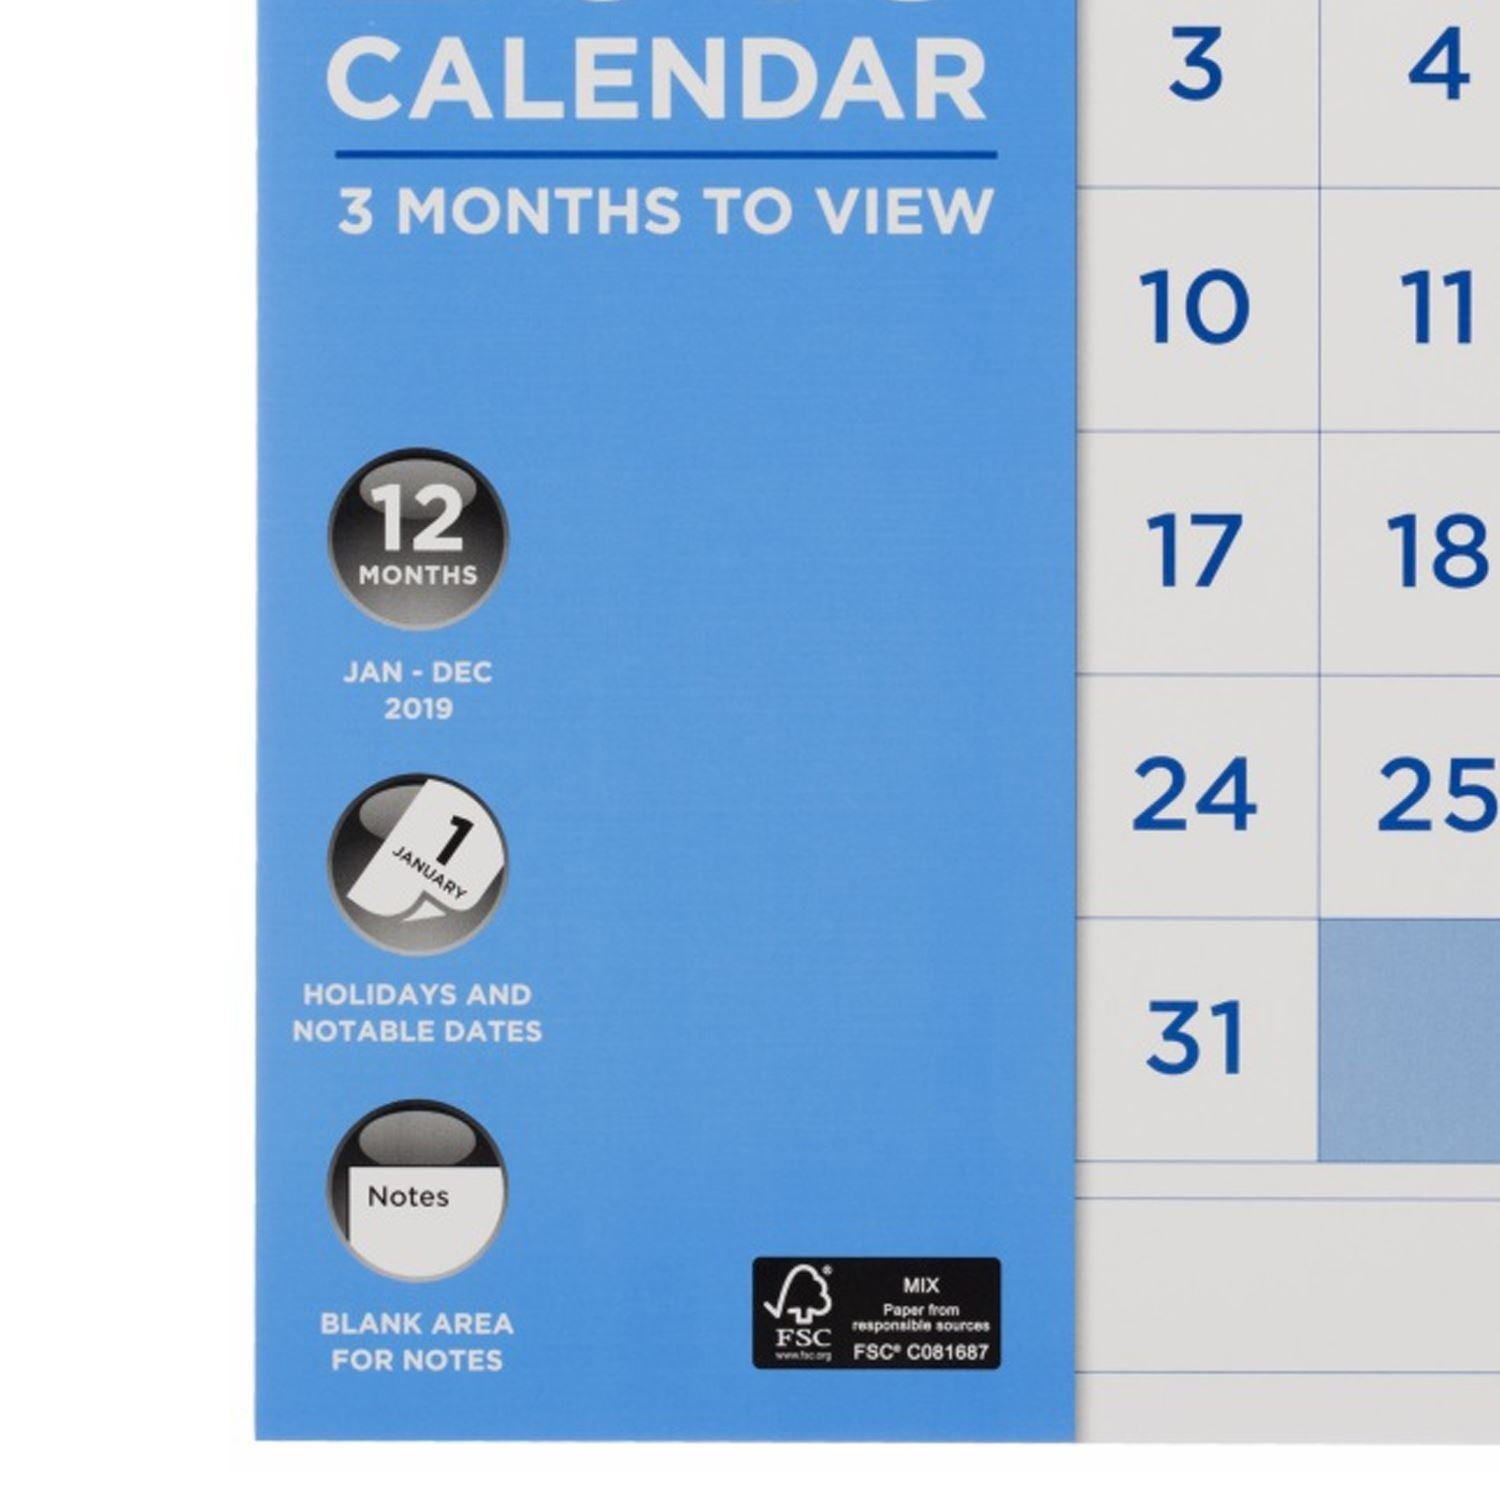 Whsmith Large Wall Calendar 2019 3 Months To View With Blank Area W H Smith Calendar 2019